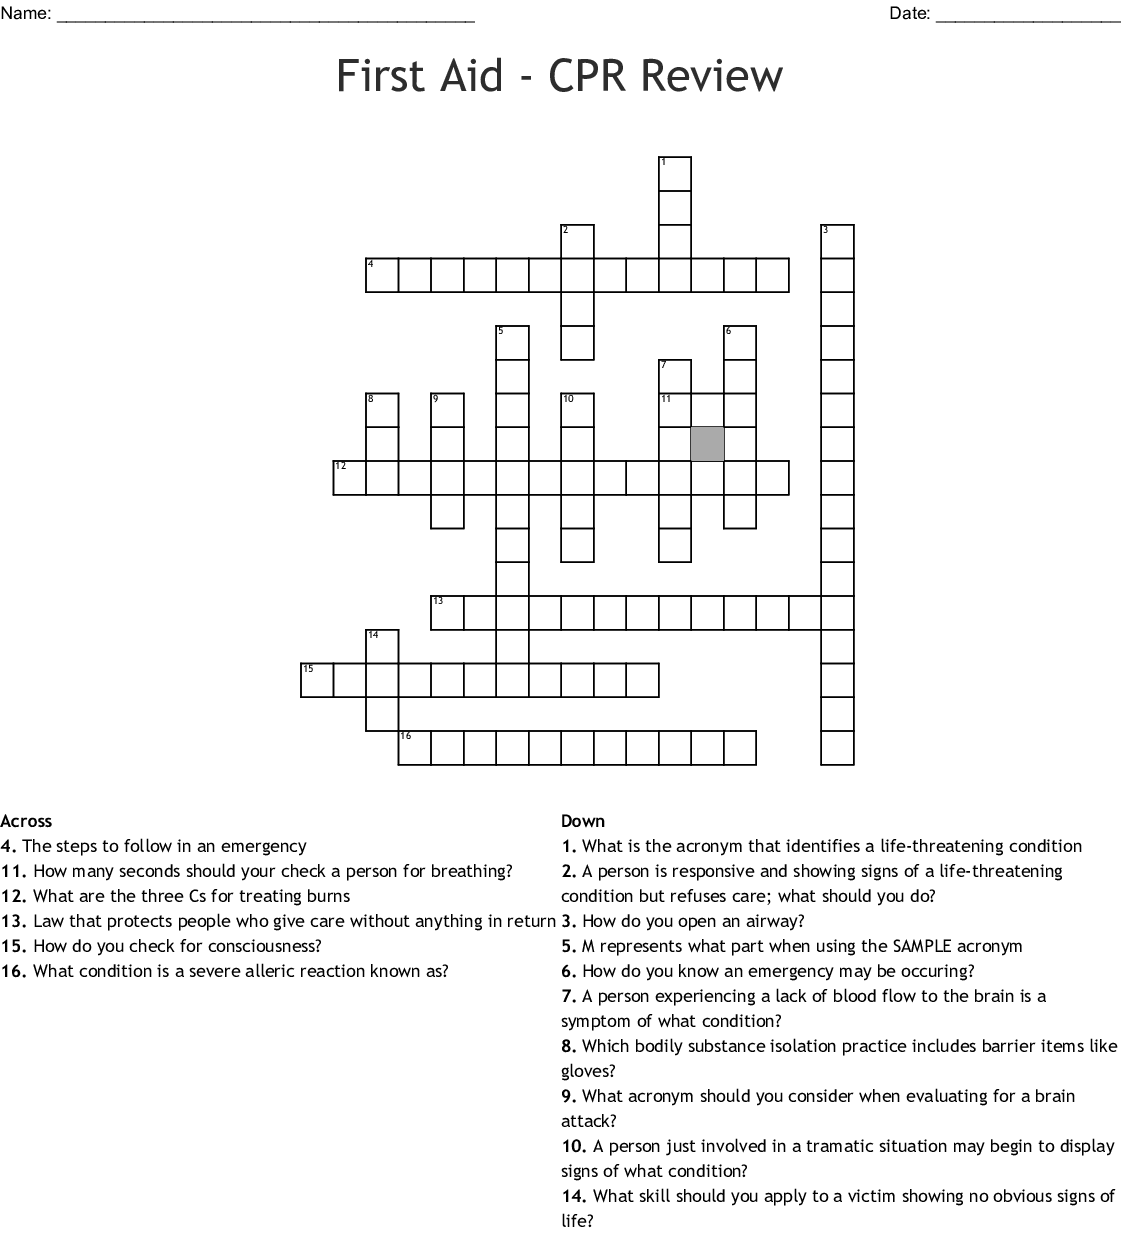 First Aid Cpr Review Crossword Wordmint